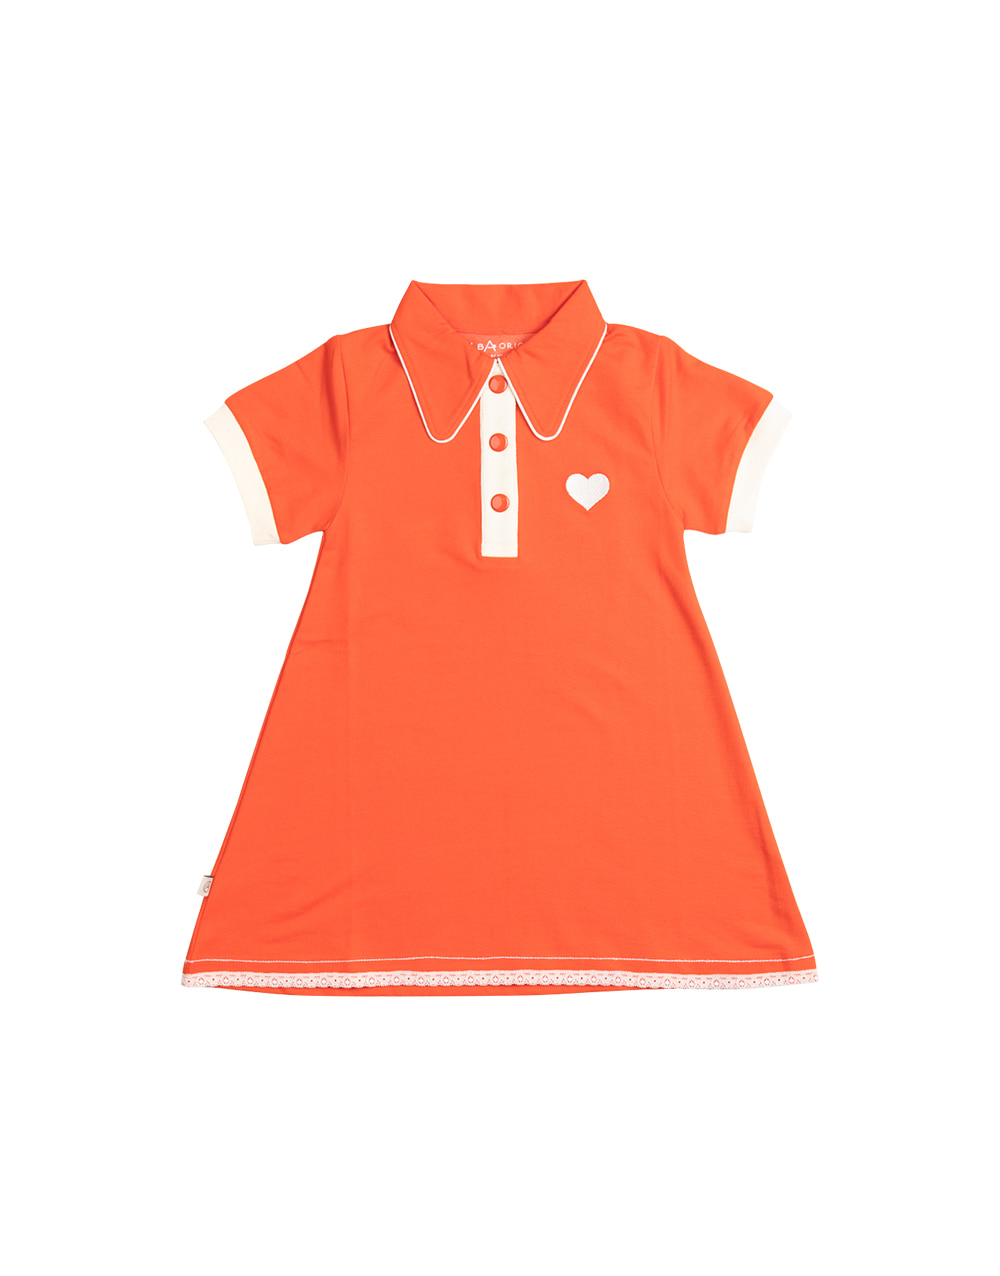 ALBA ORIGINAL JULIE DRESS  Orange.com